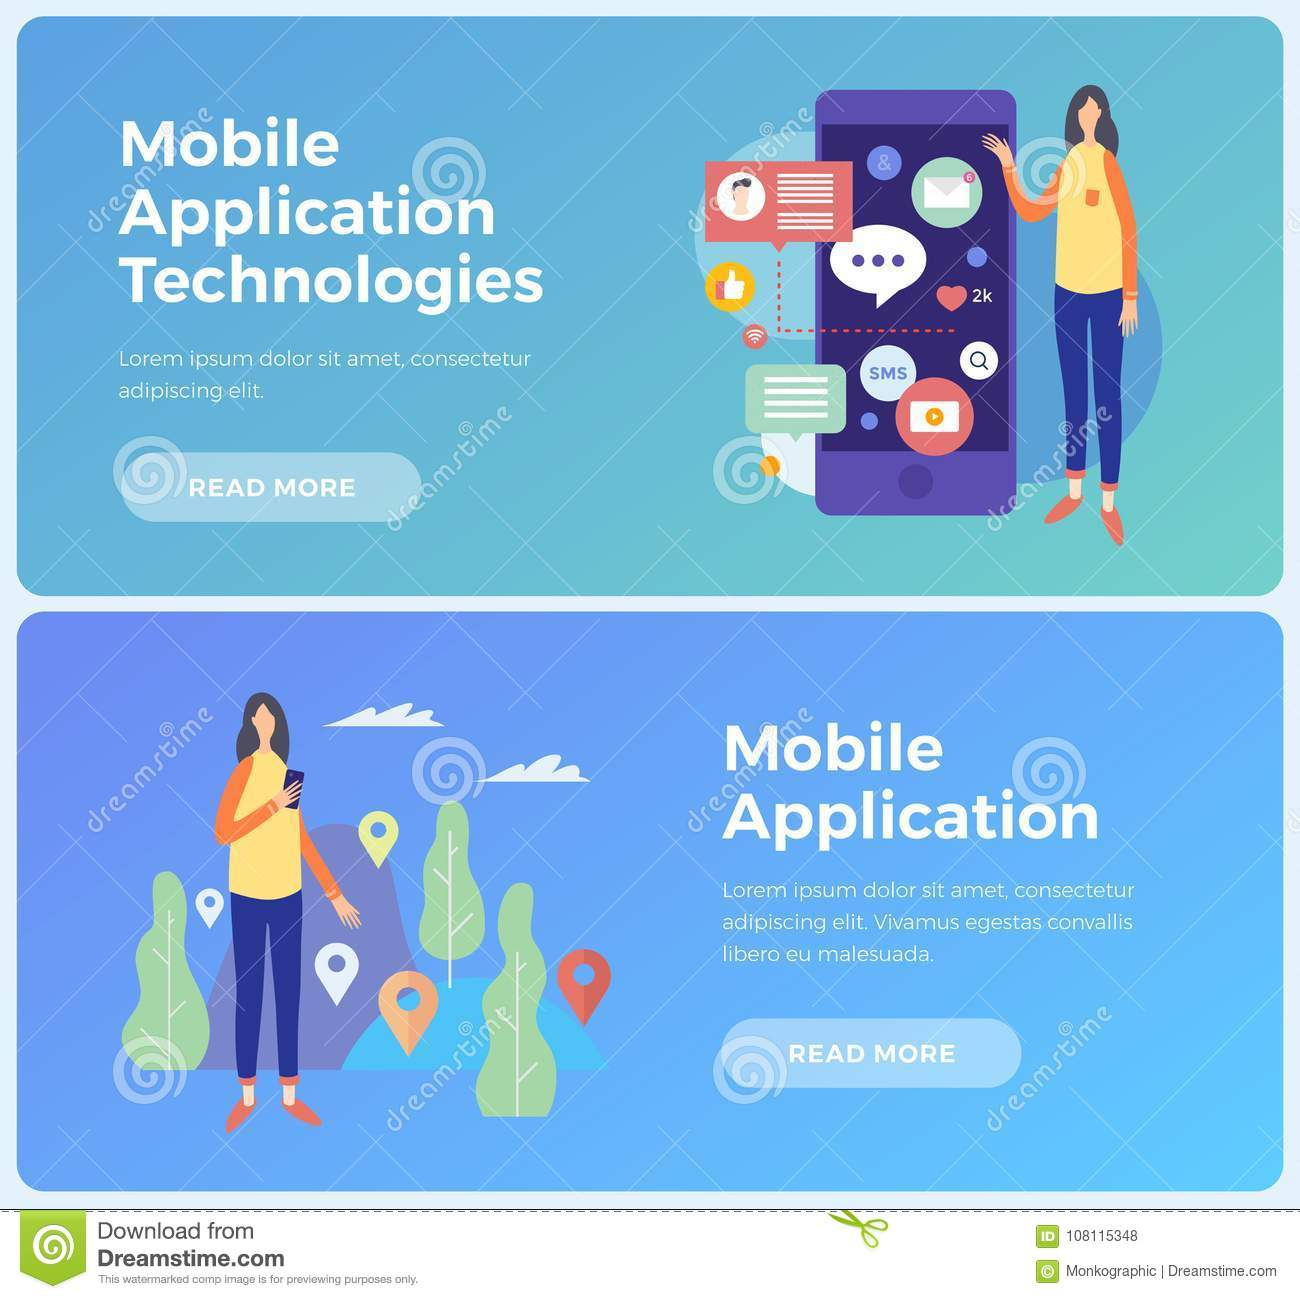 Banners on topic mobile application and Information technologies. Concept social networks and communication on Internet.